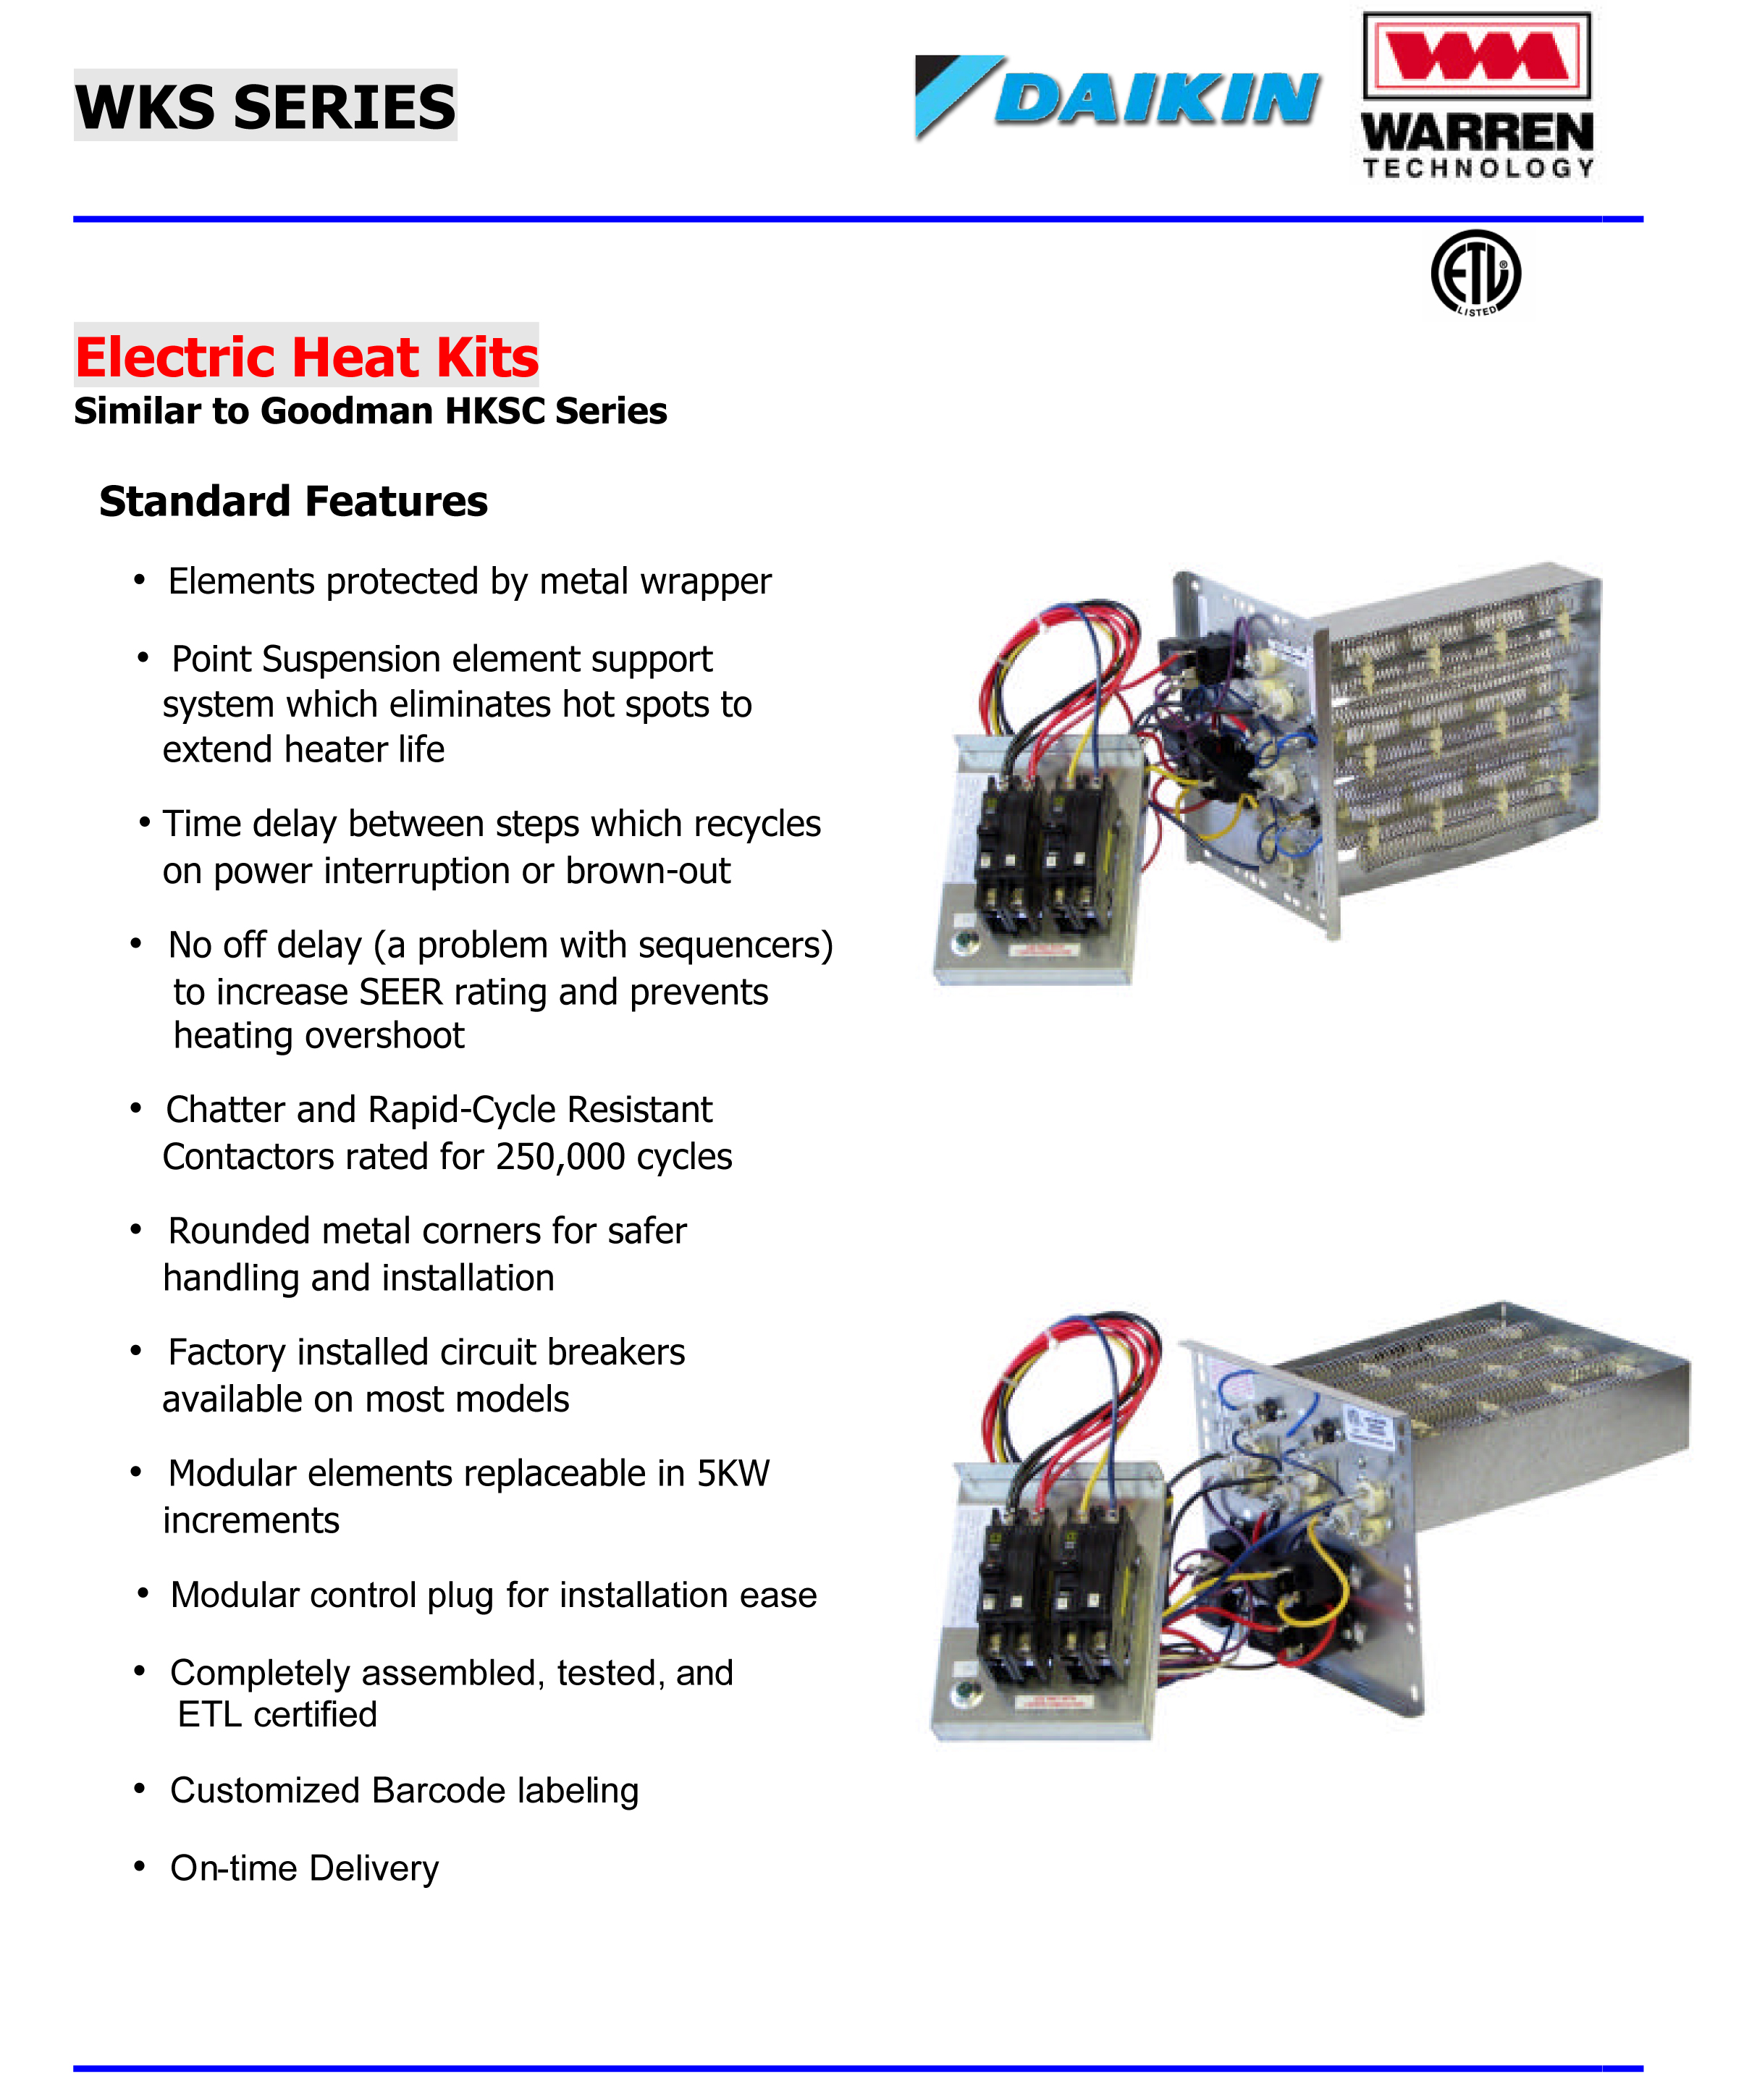 10 KW    heat       strip    for DaikinGoodman mercial ARUF air handler units 208V 3 phase WKS1004